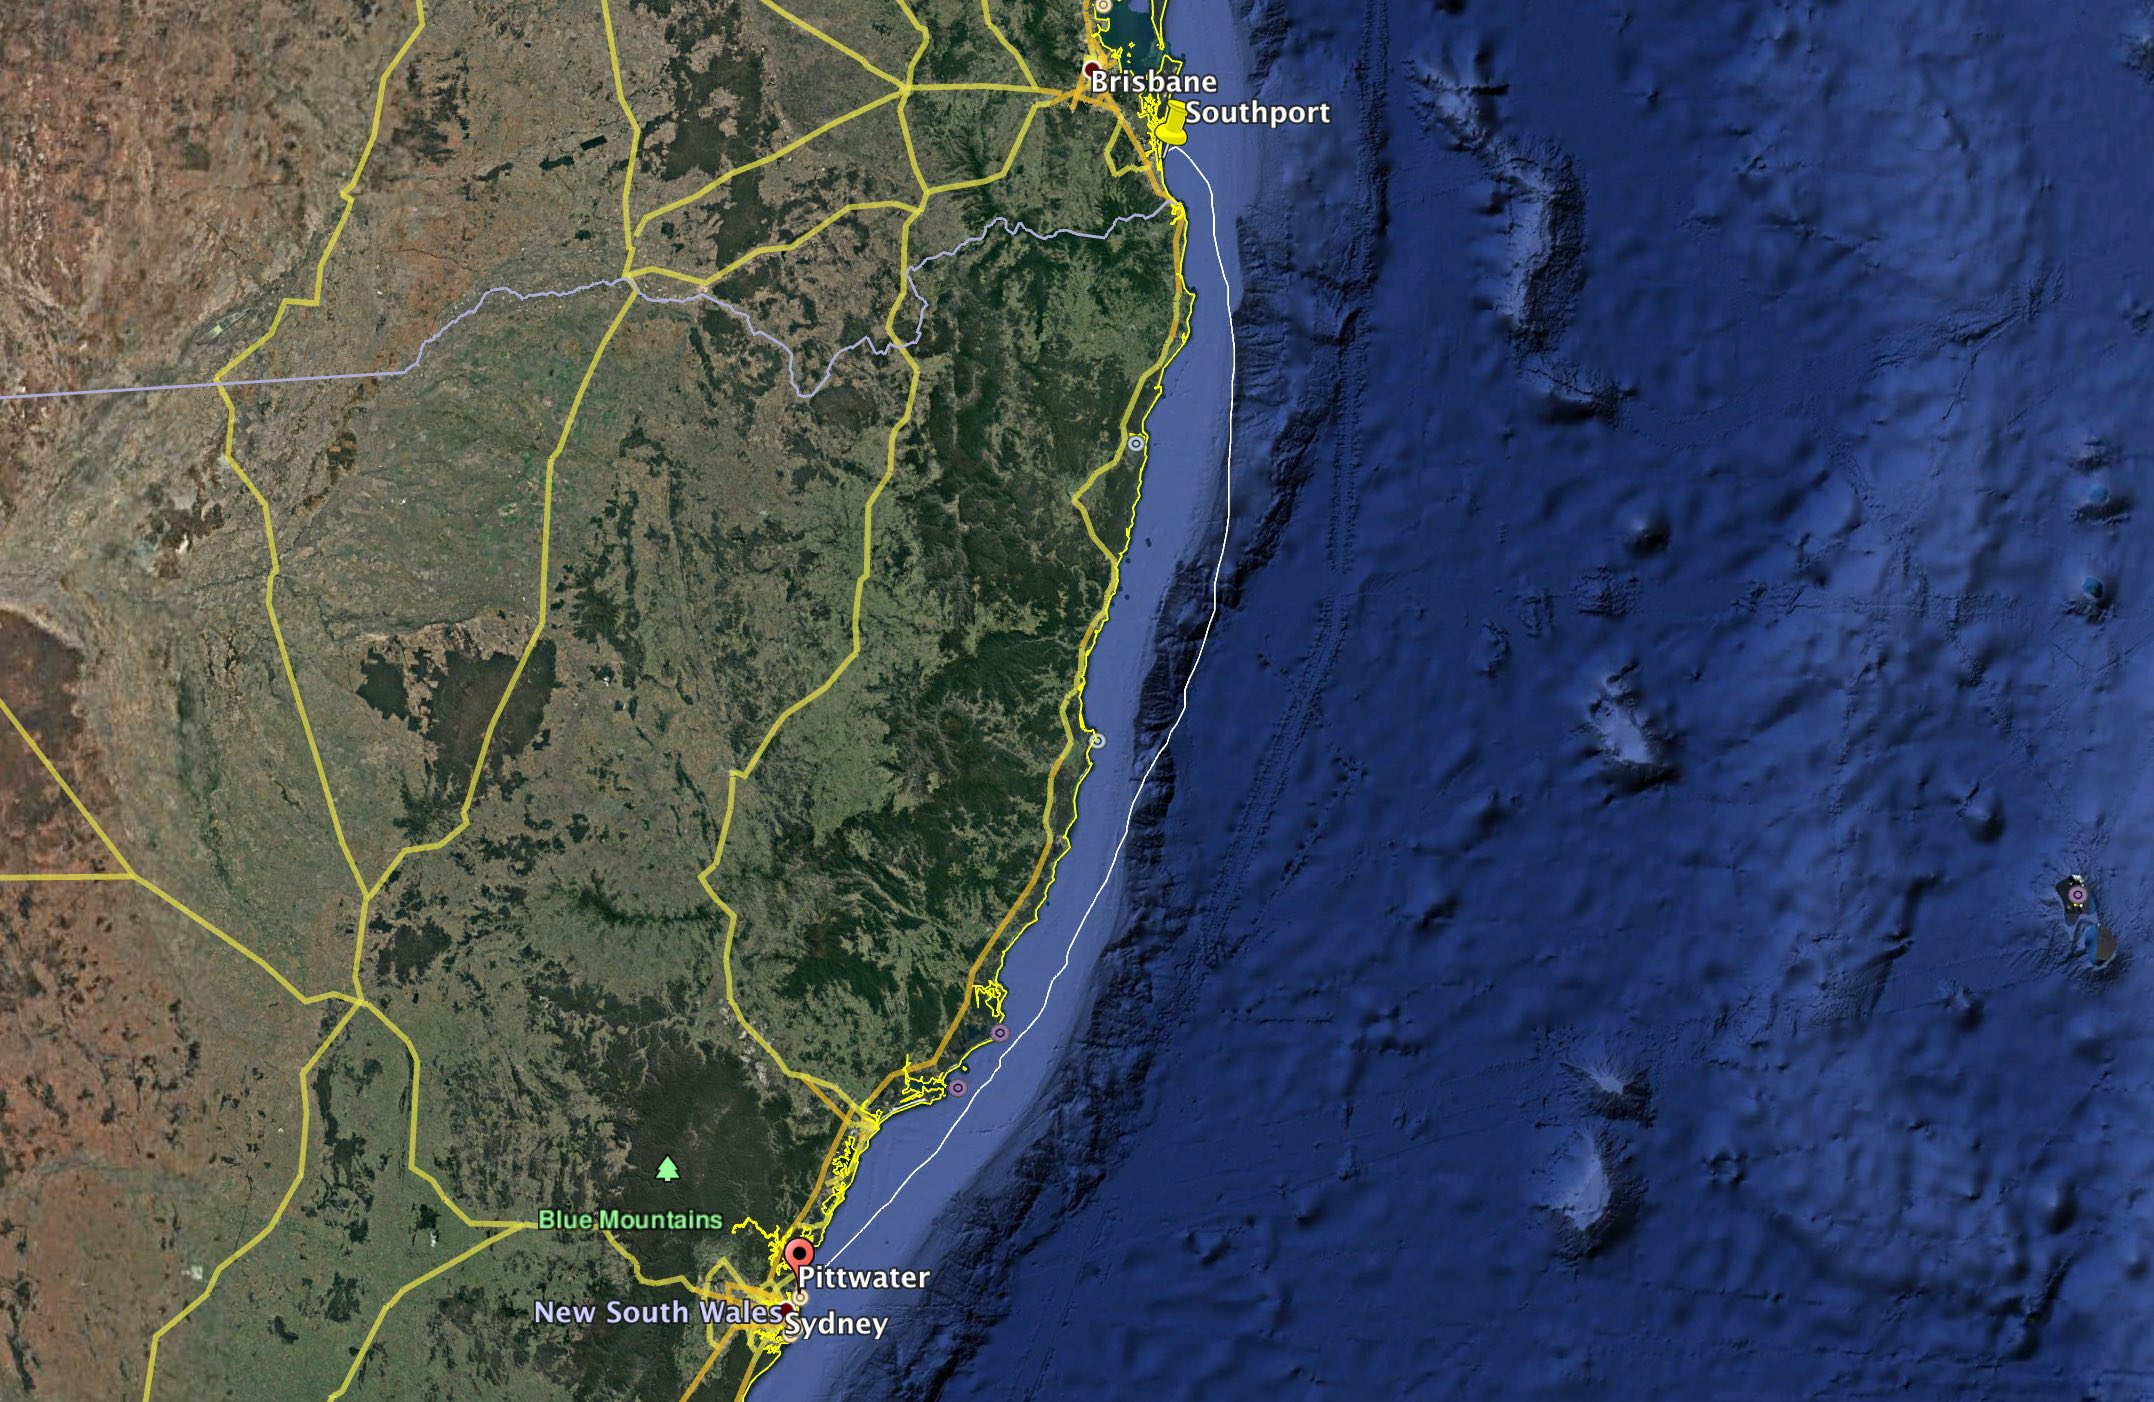 The 370nm race course from Pittwater to Southport